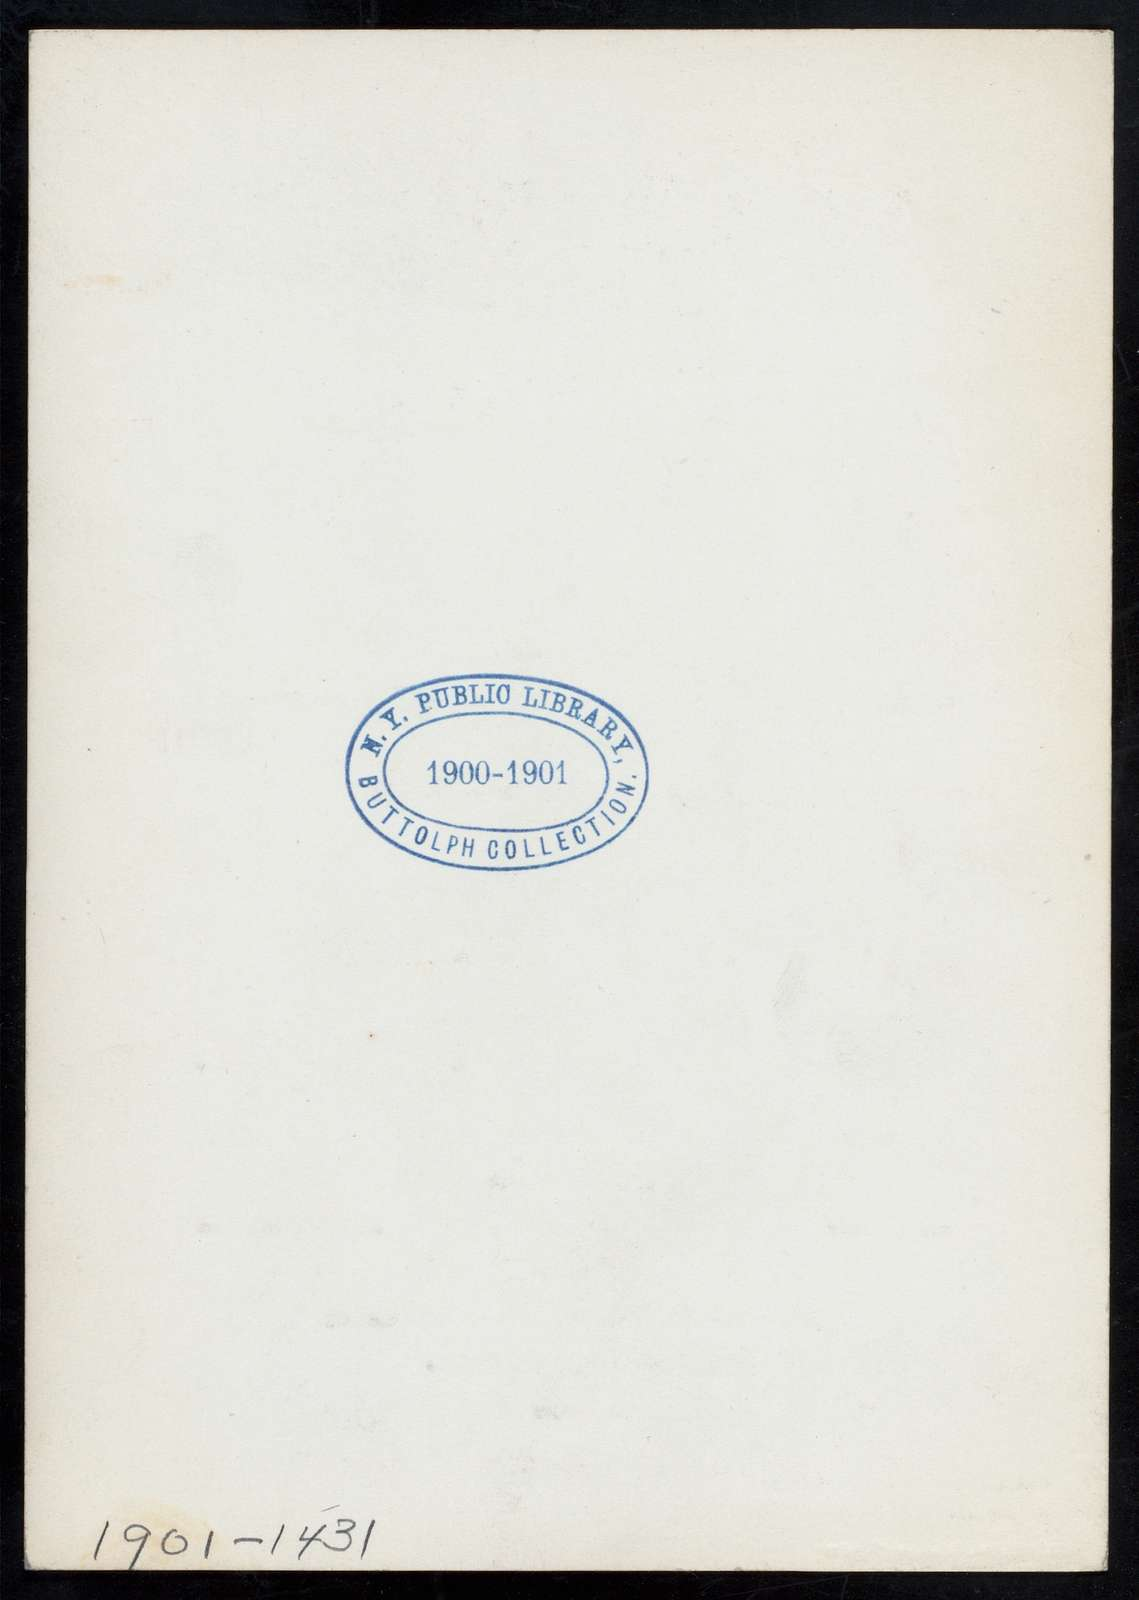 PRESIDENTIAL TOUR TO THE PACIFIC COAST [held by] UNITED STATES GOVERNMENT [at] EN ROUTE (RR;)